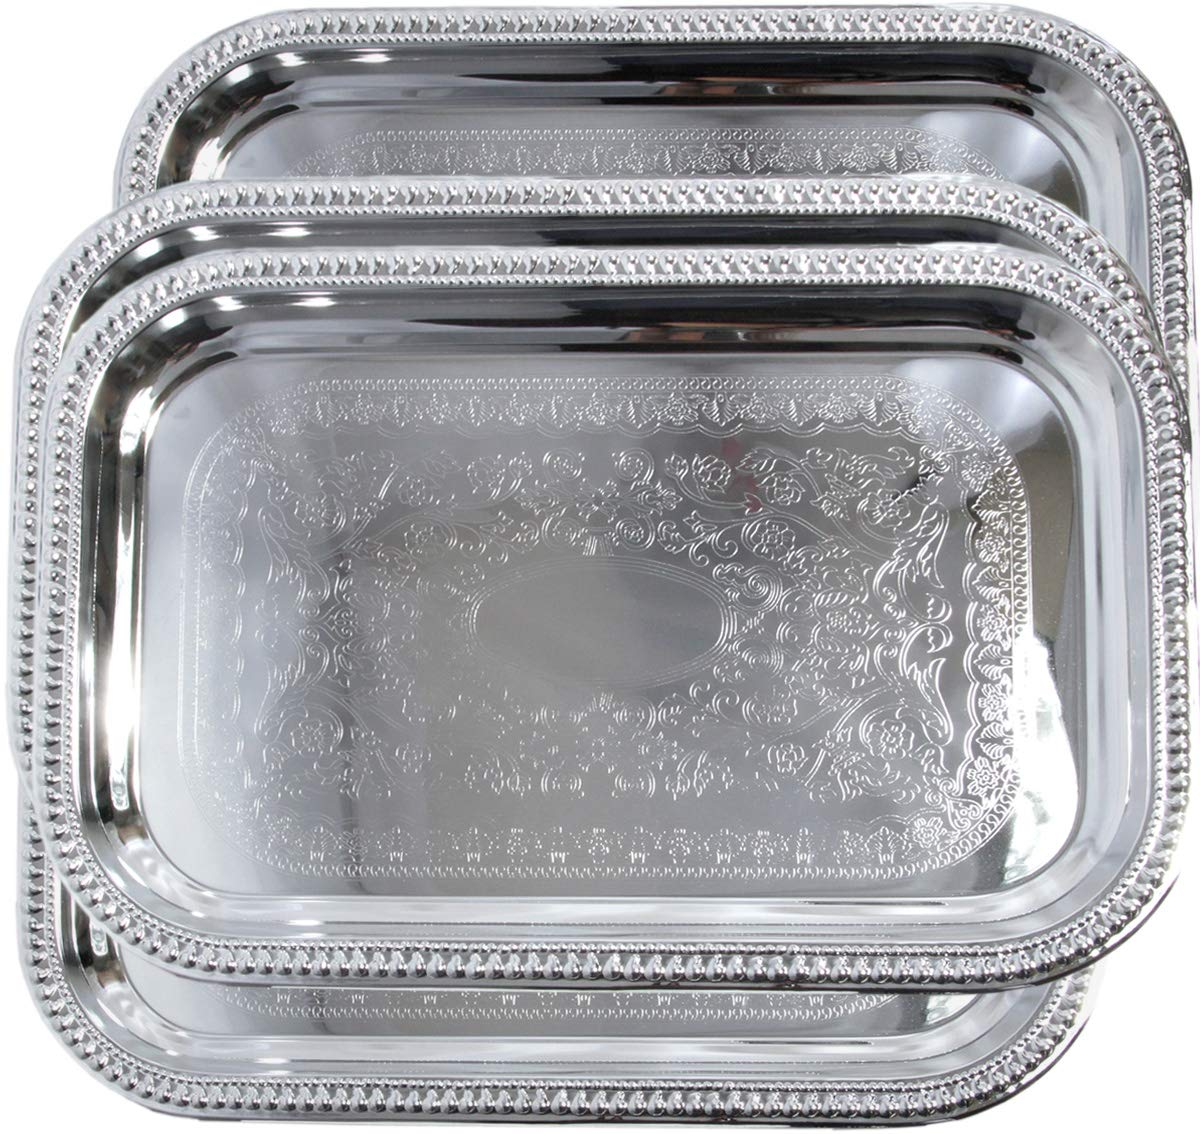 Maro Megastore 18.2'' x 12.4'' Oblong Rectangular Trim Floral Pattern Engraved Catering Chrome Plated Serving Plate Mirror Deco Tray Platter Tableware Party Food Multi-Purpose (Medium) T156M-4PK